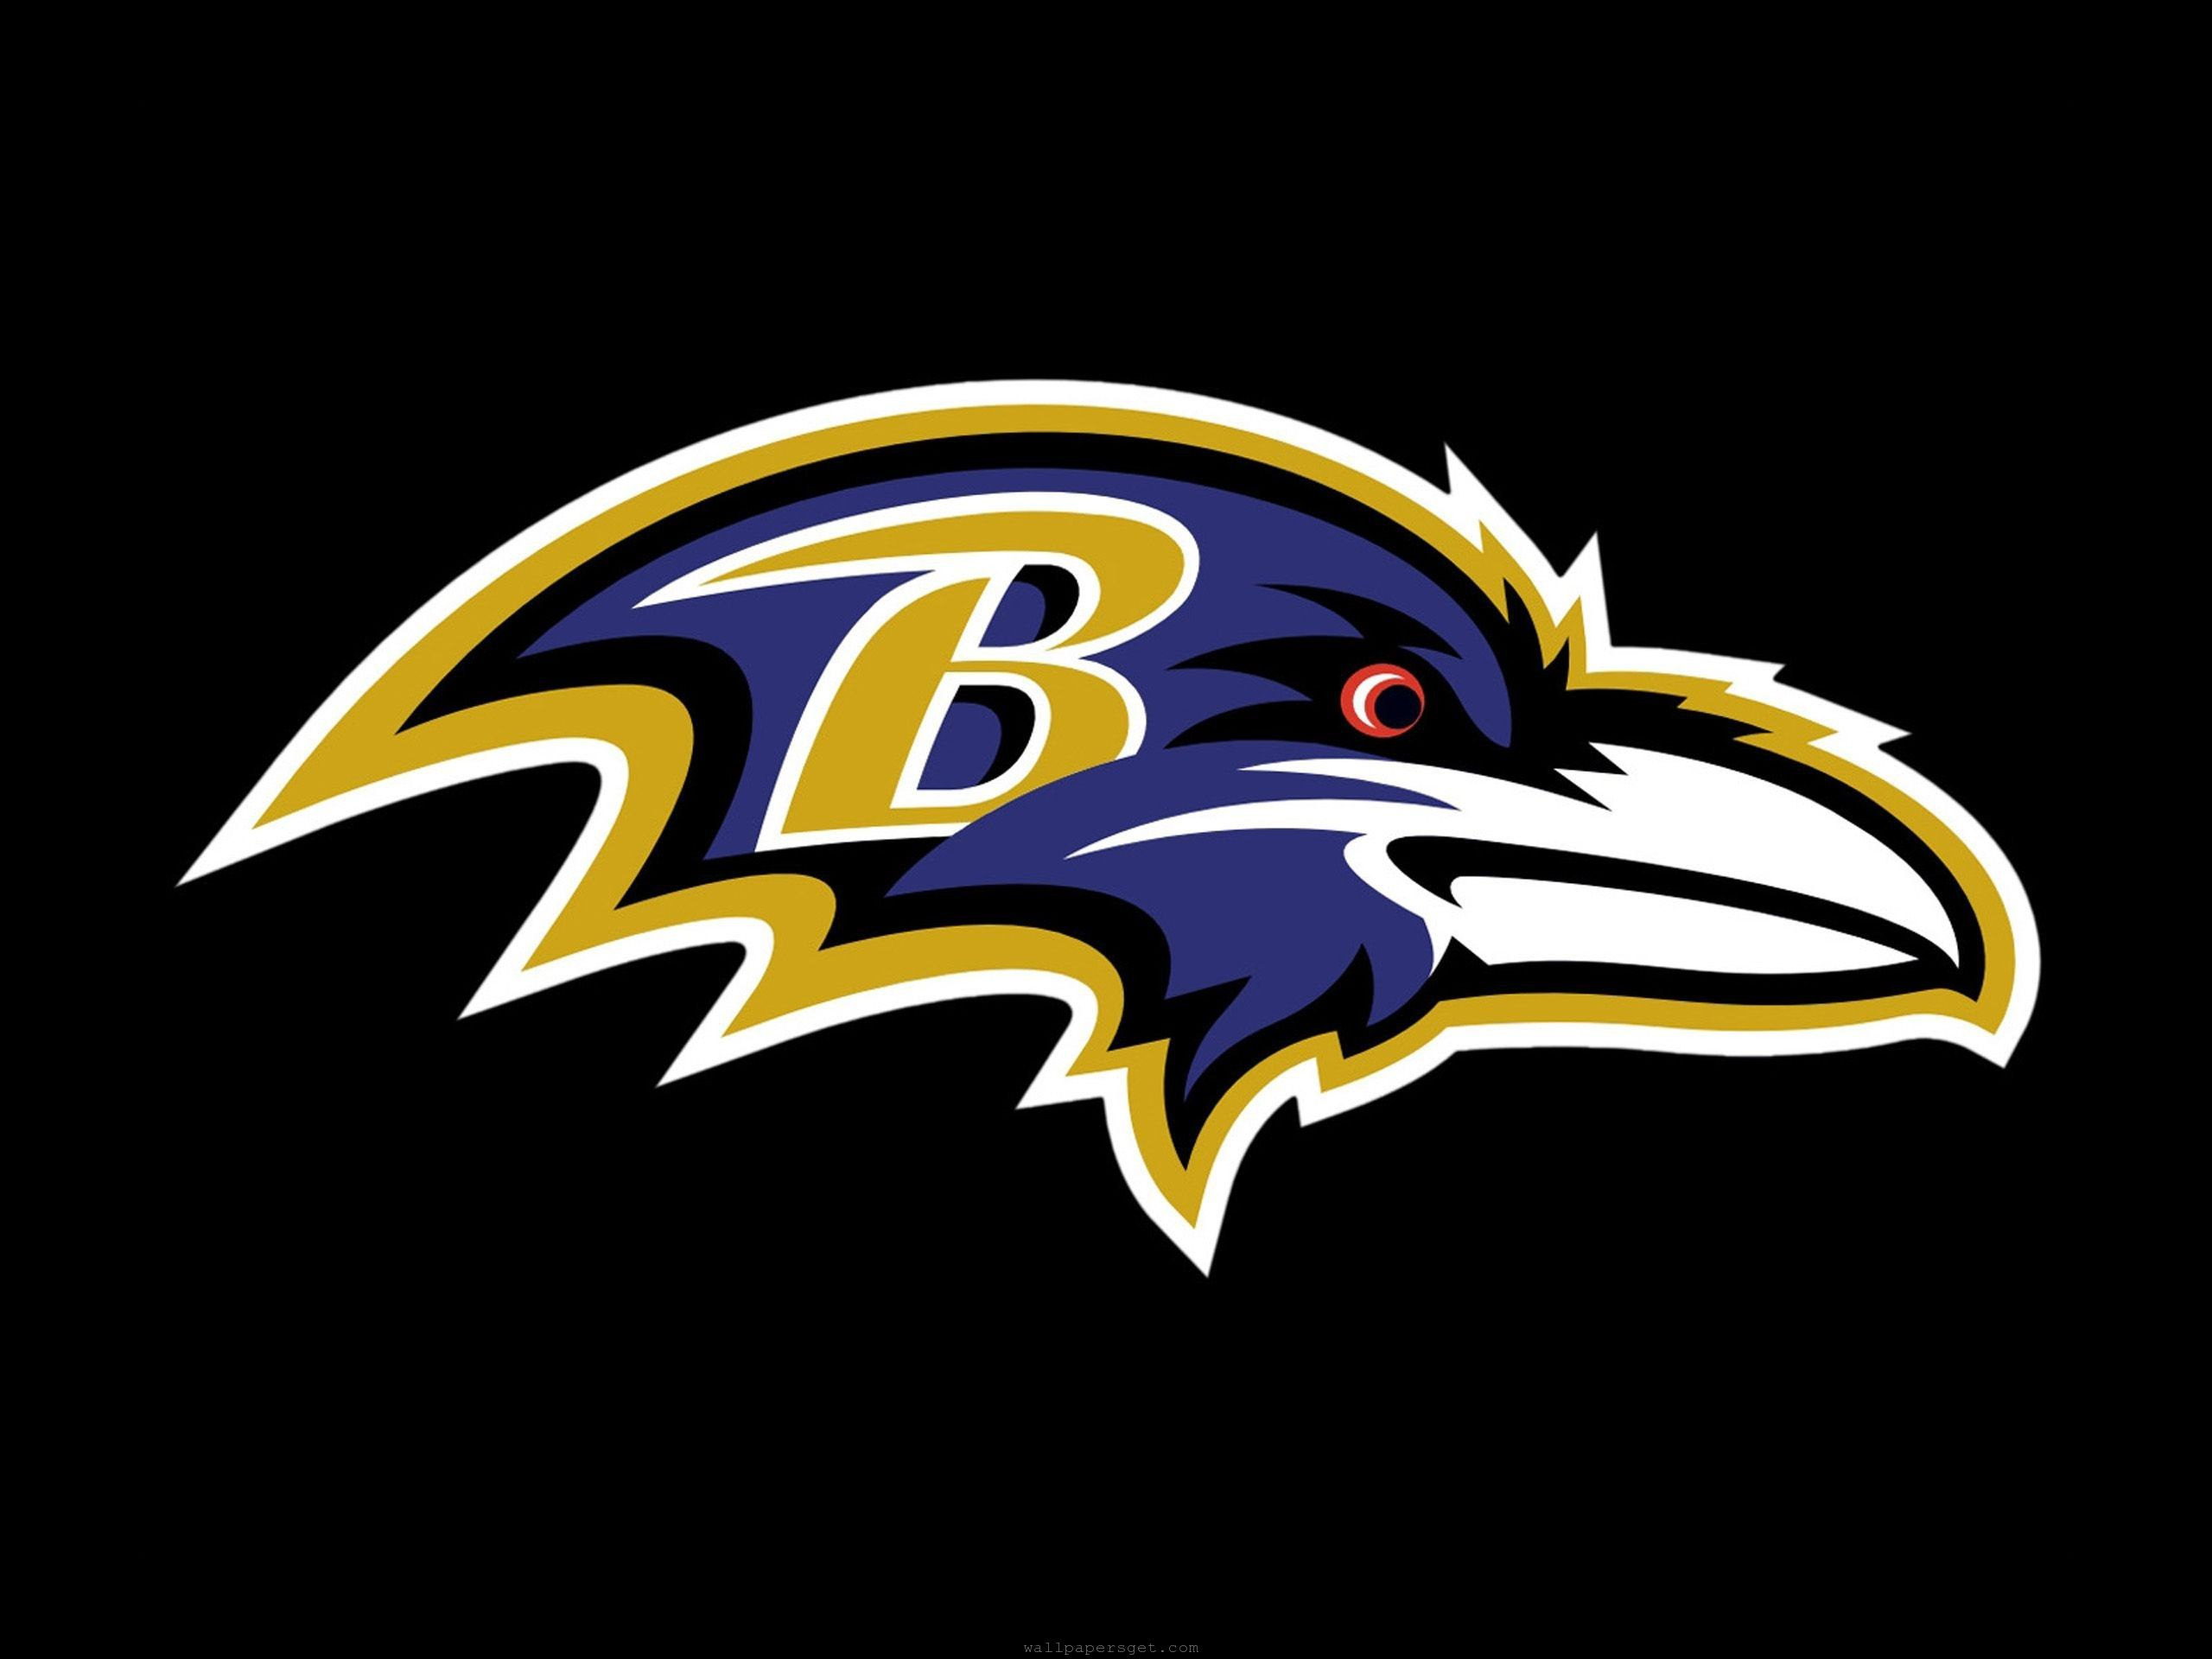 Just The Best Football Team In The Nfl Literally Baltimore Ravens Logo Raven Logo Baltimore Ravens